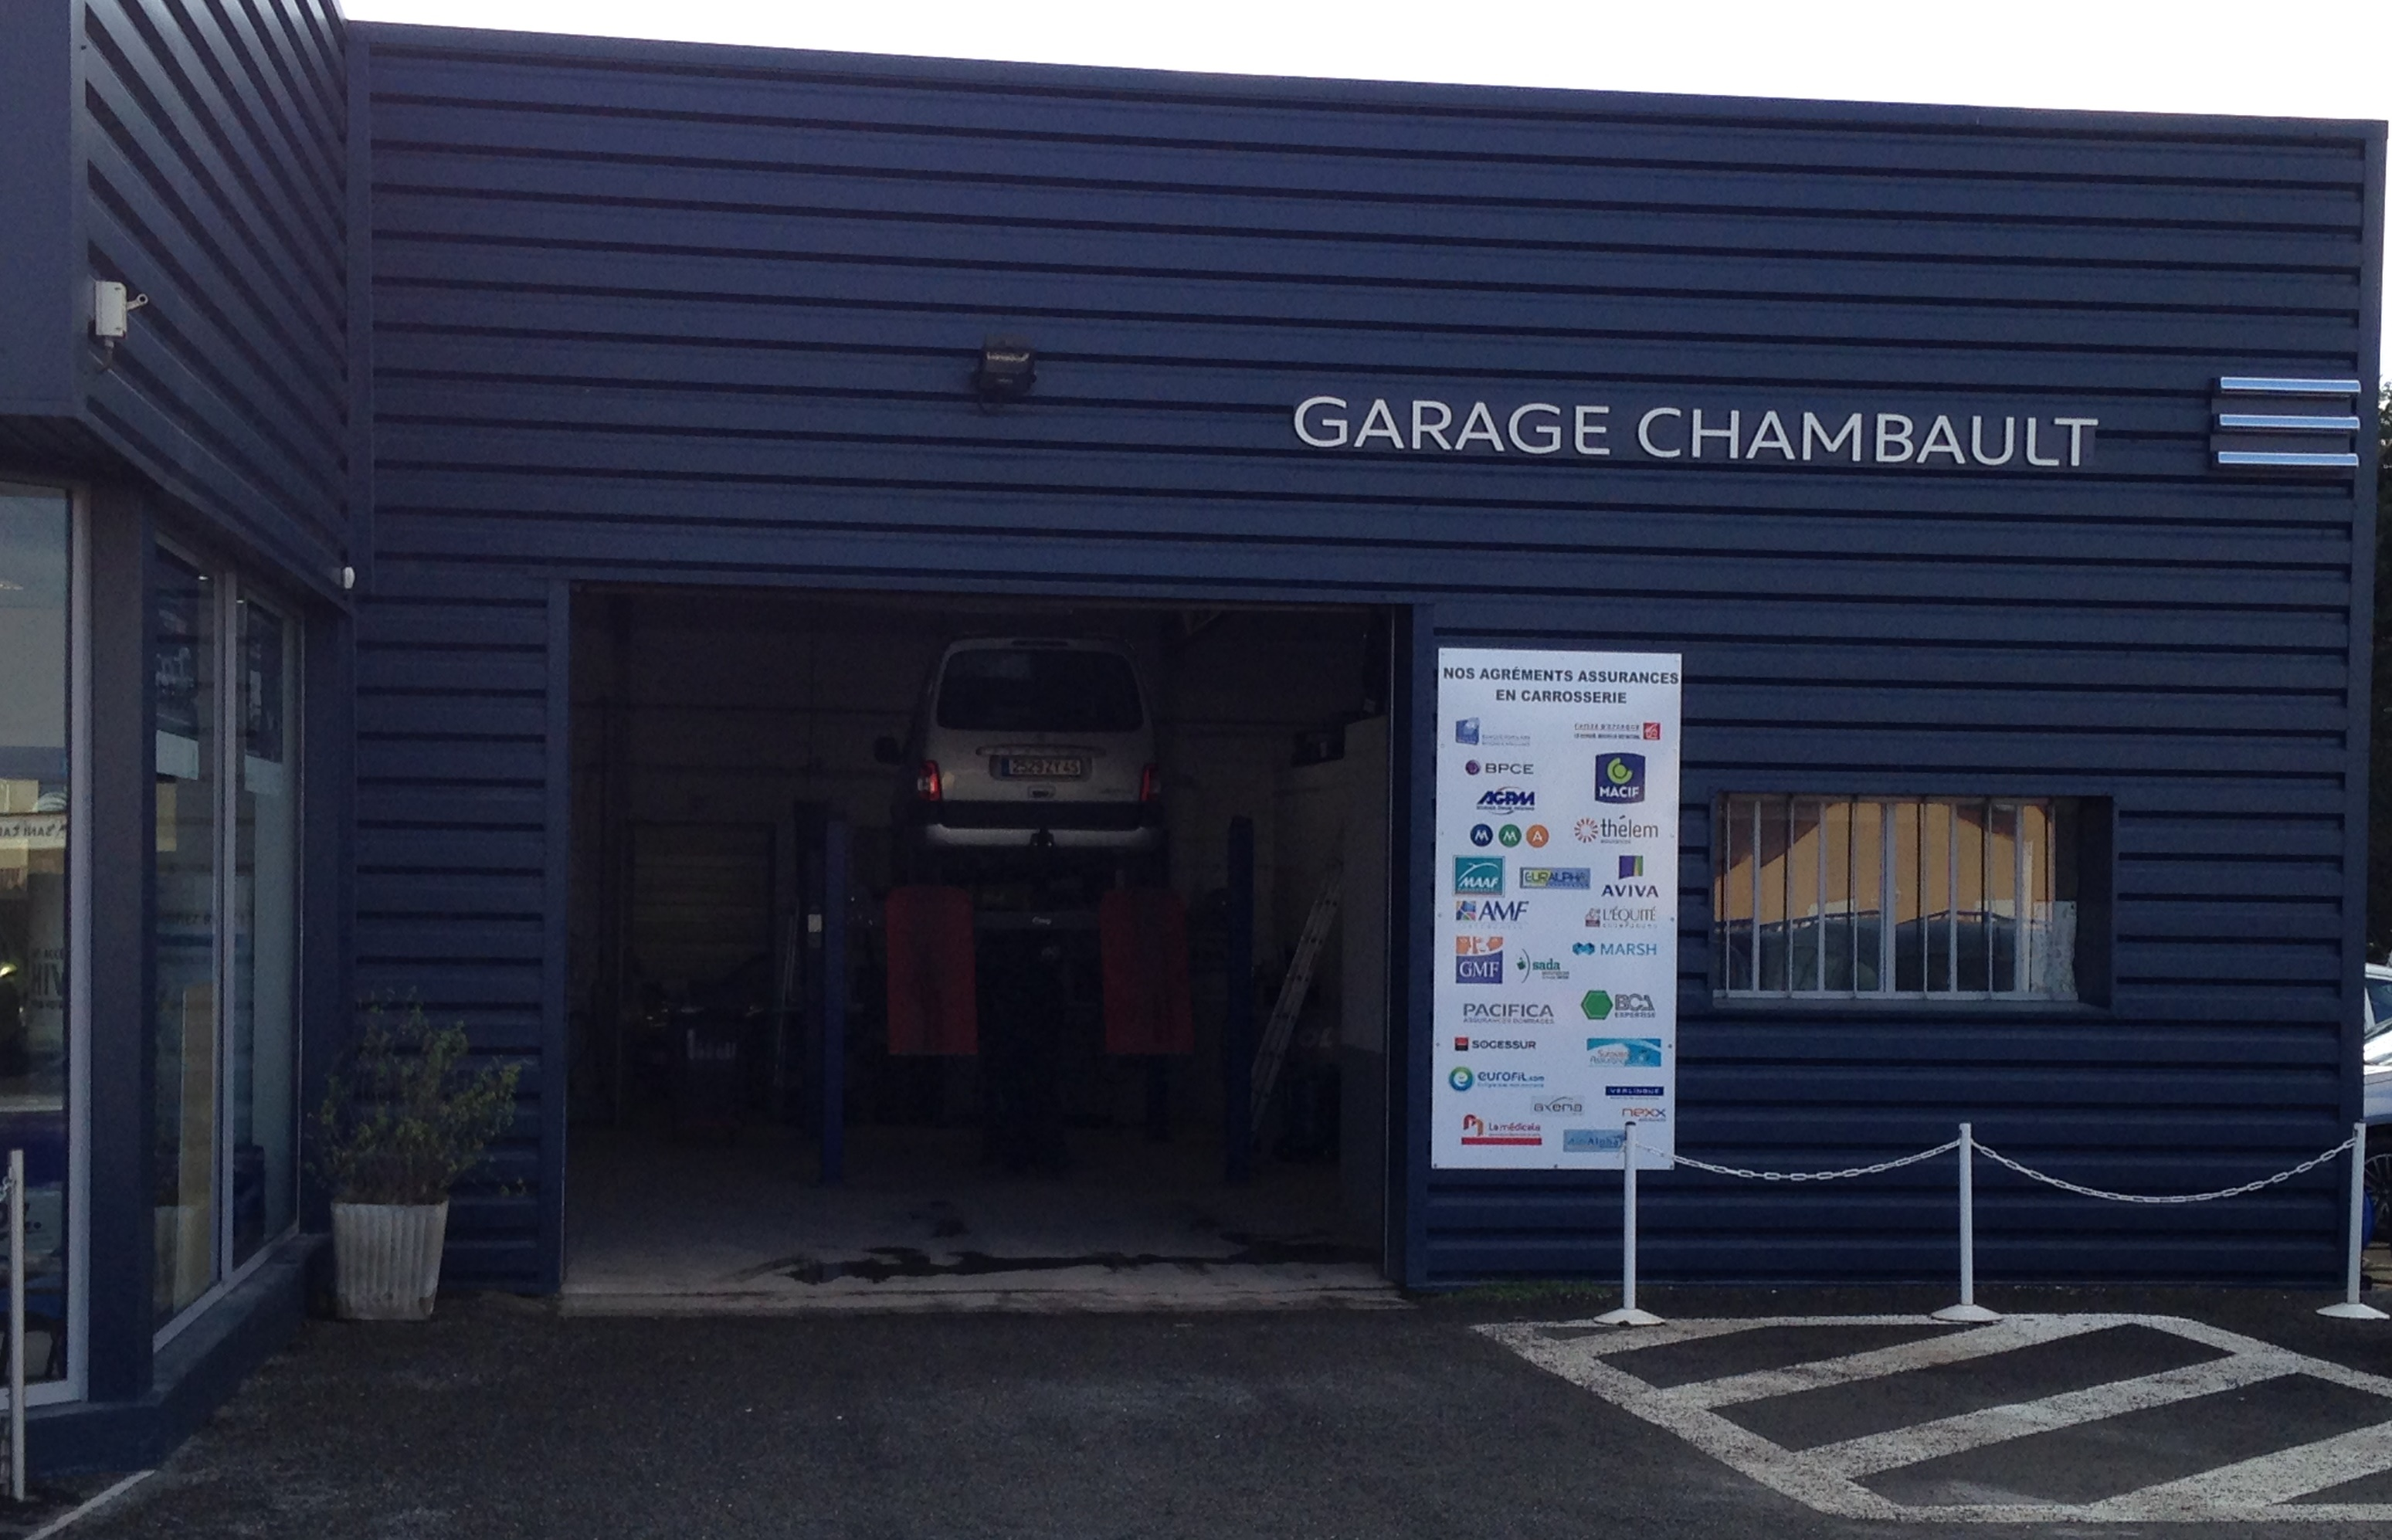 Pr sentation de la soci t garage chambault for Garage peugeot arles